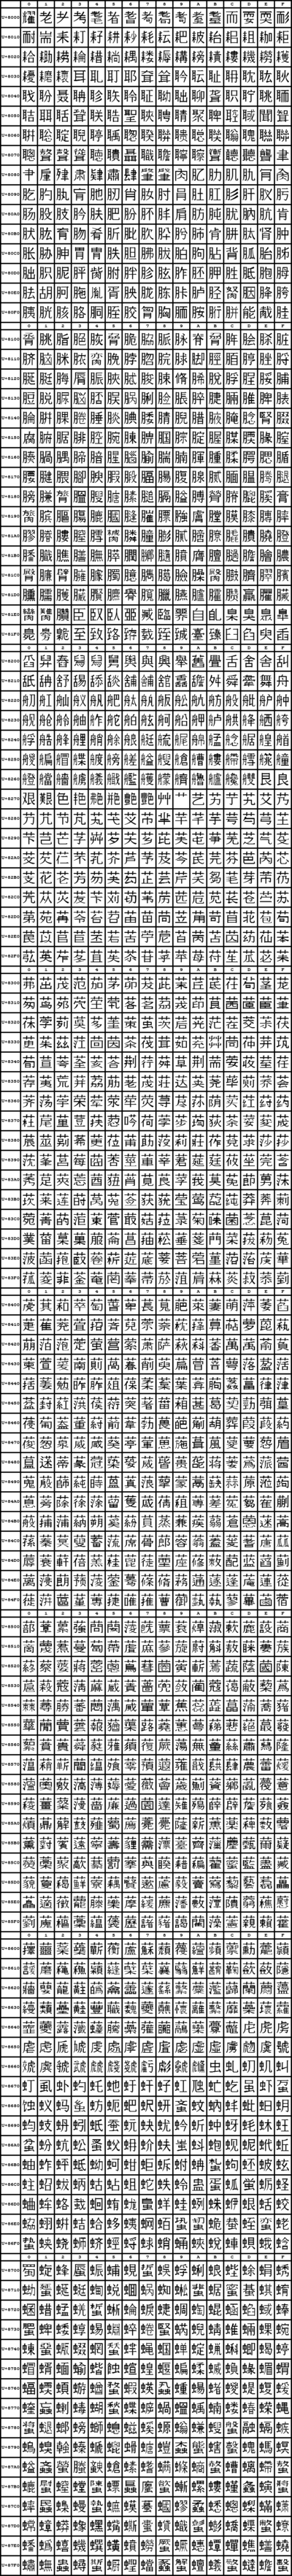 UCB CJK Unified Ideographs 8000-87FF.png